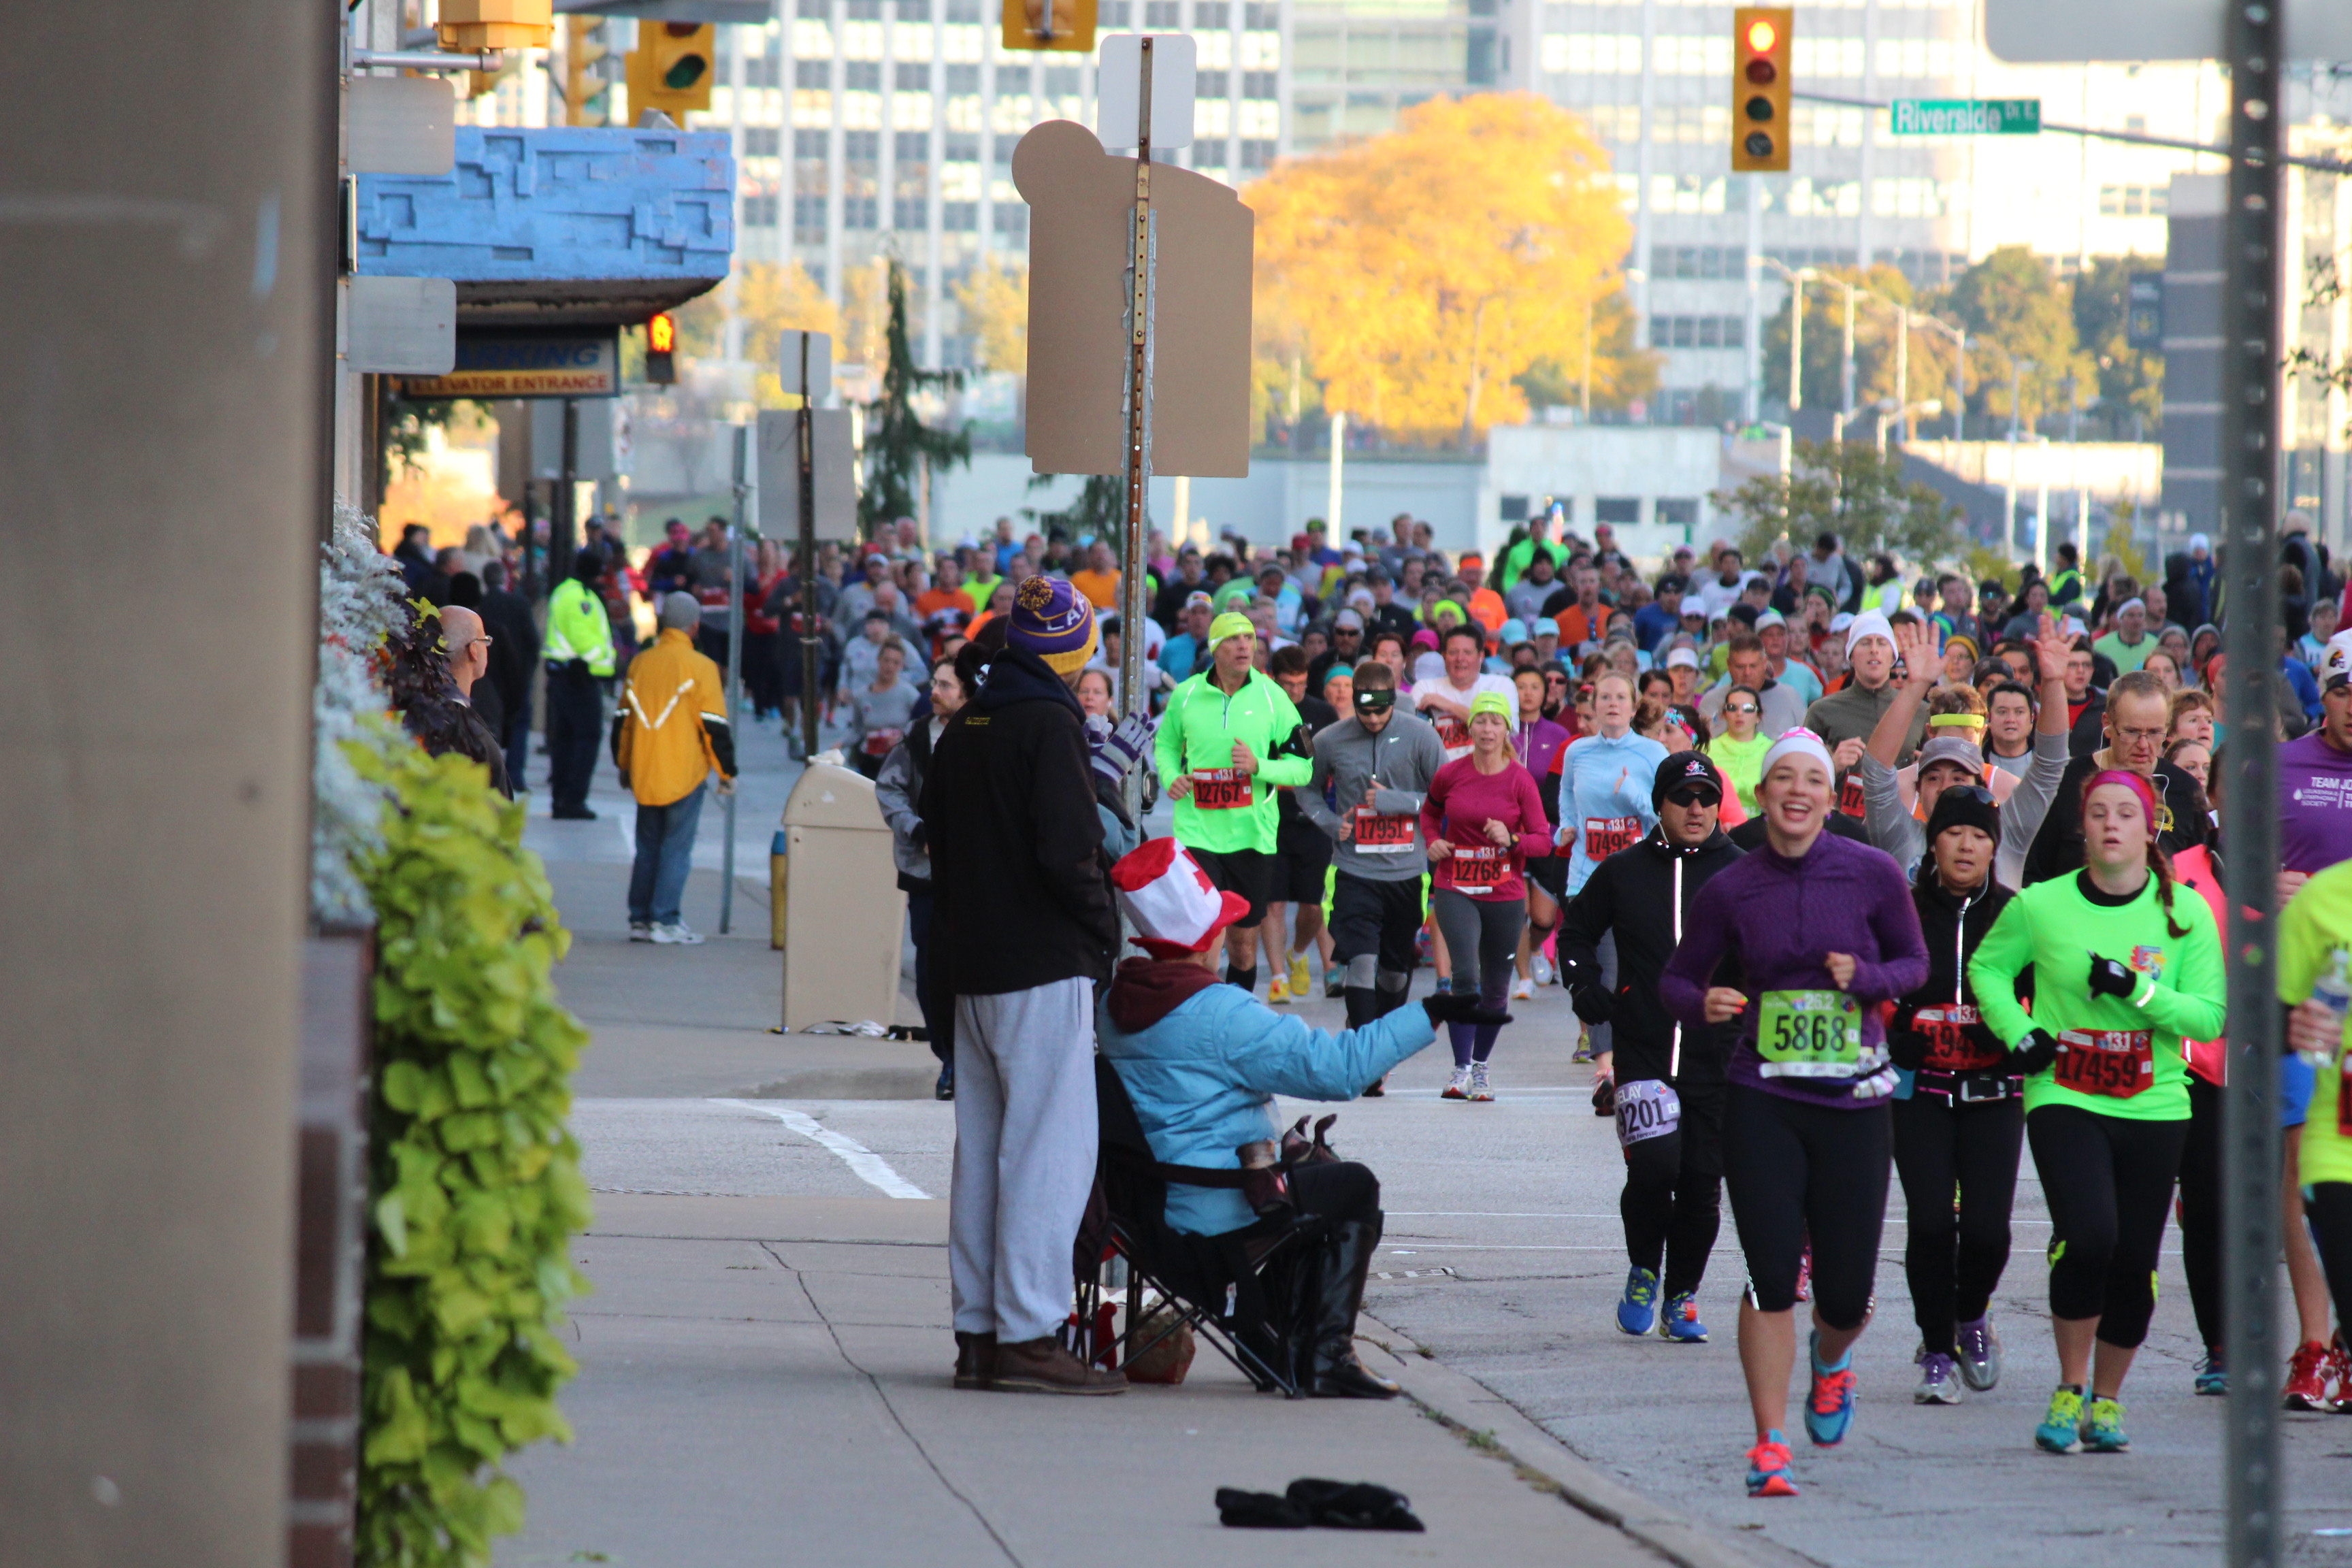 Runners during the Detroit Free Press Marathon, 2014. (Photo by Adelle Loiselle.)